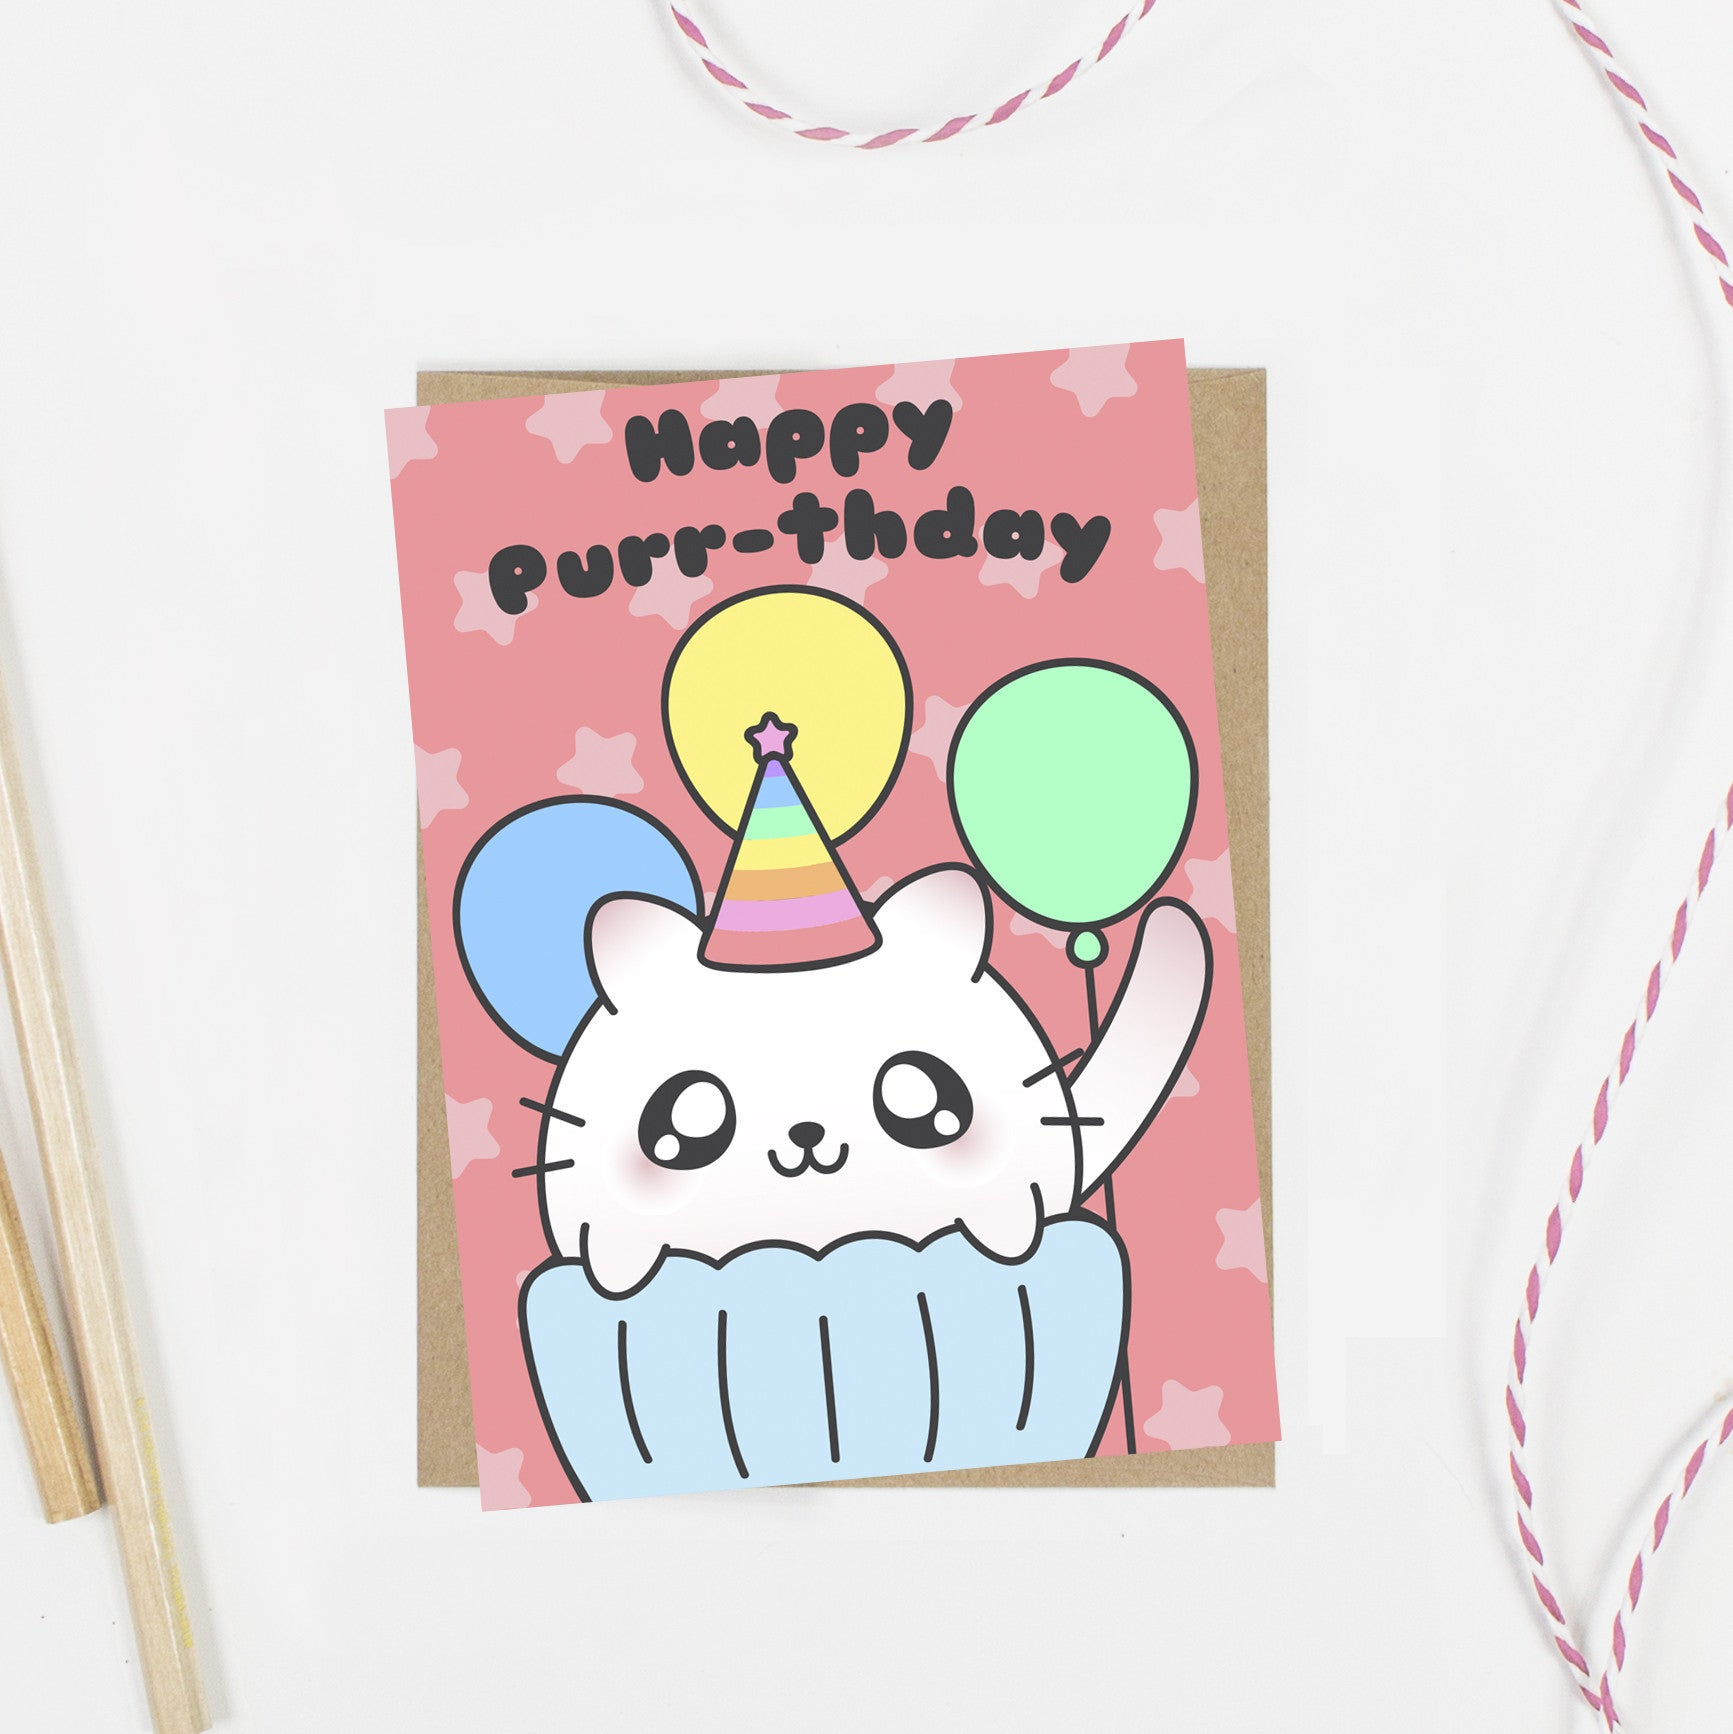 Happy Purr-thday Birthday Cat Card